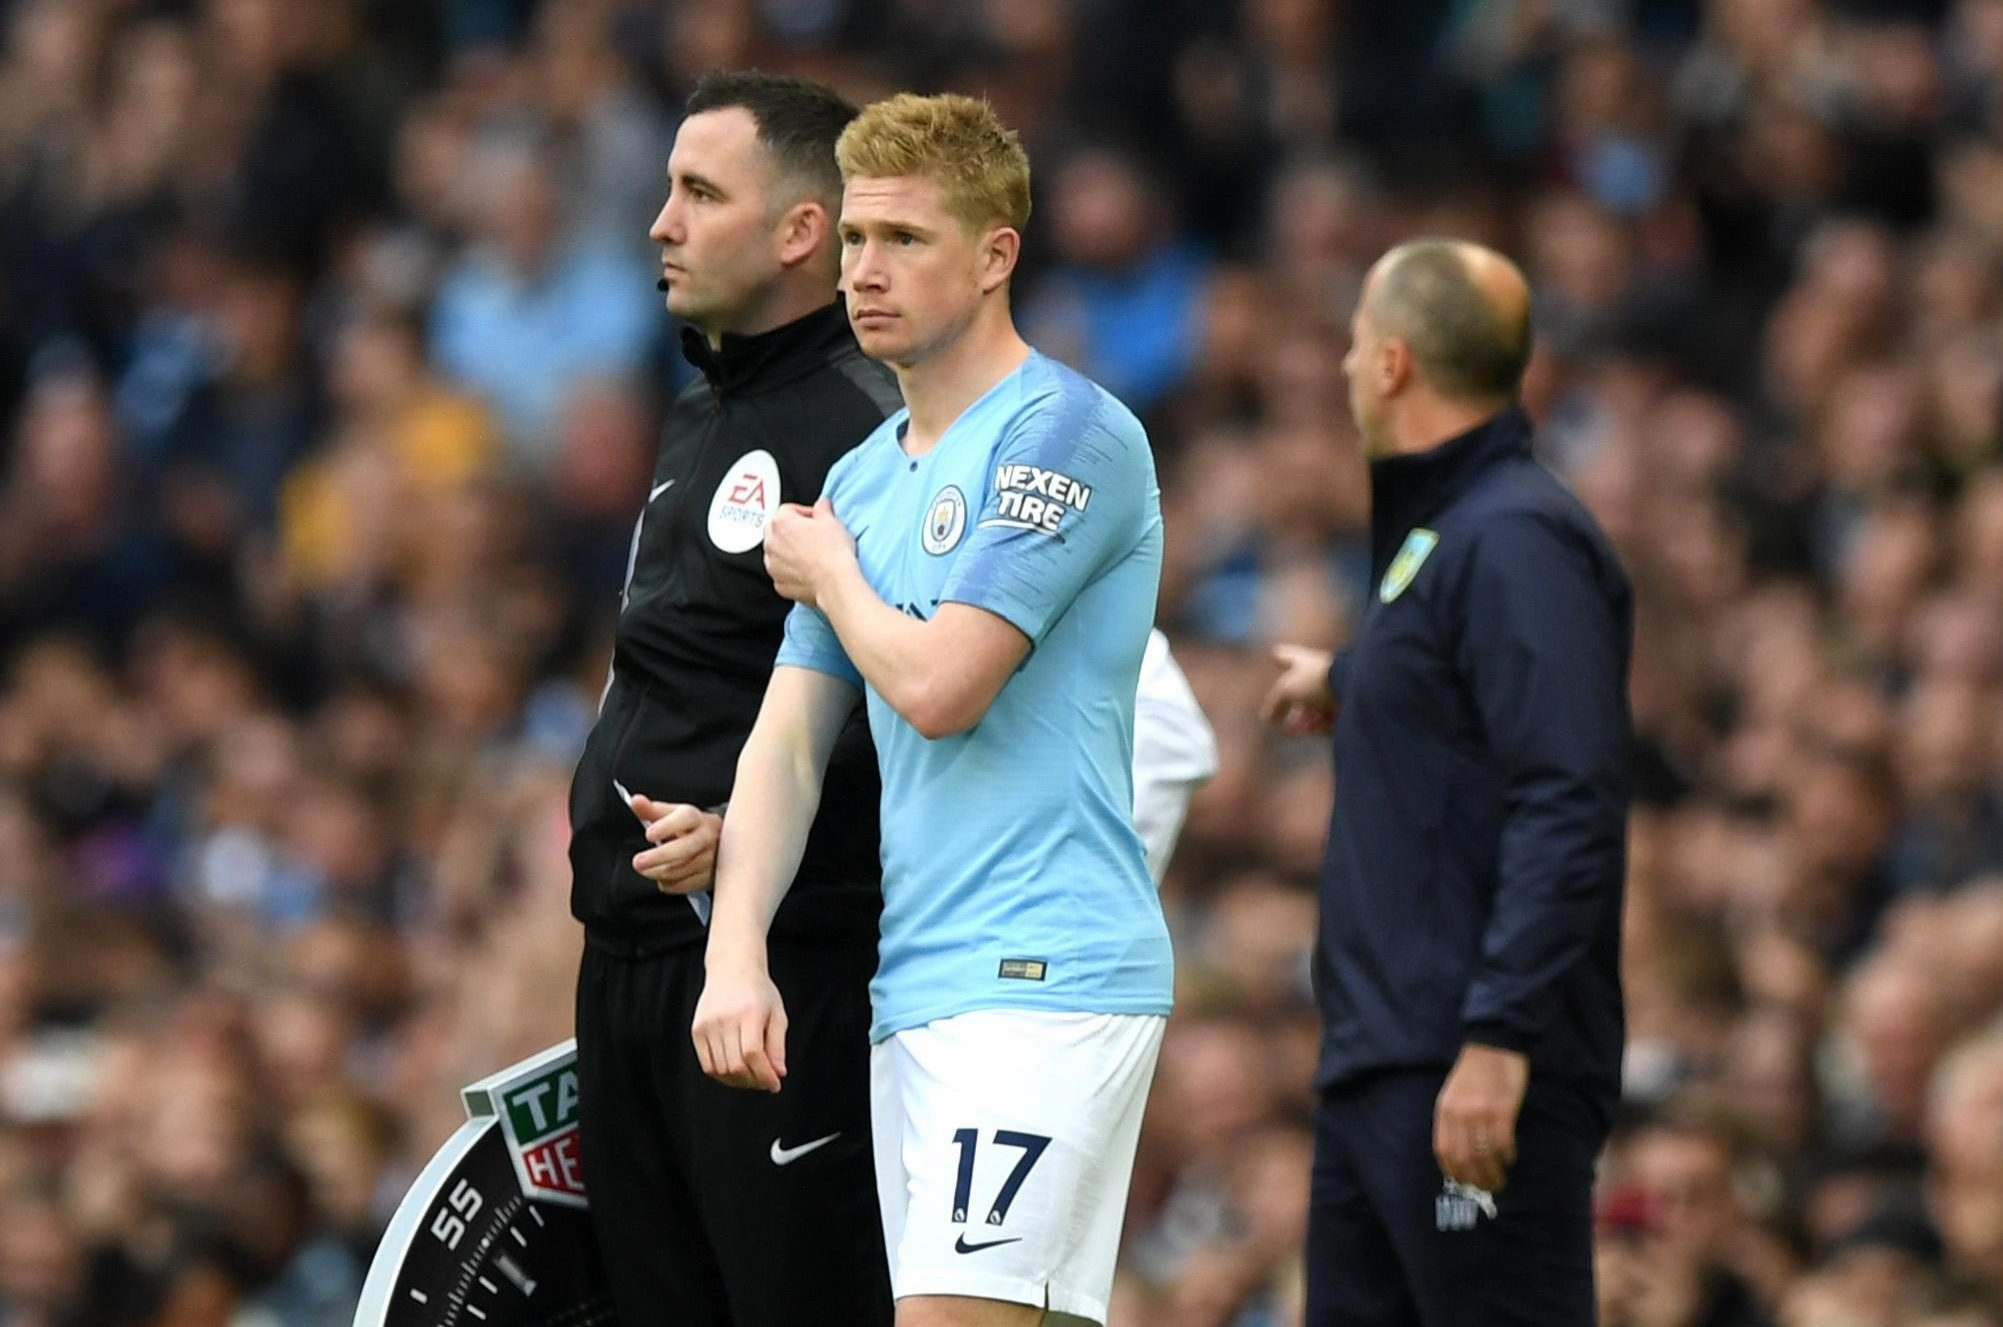 Kevin De Bruyne is concerned about the state of the Wembley pitch for Manchester City's trip to London to face Tottenham